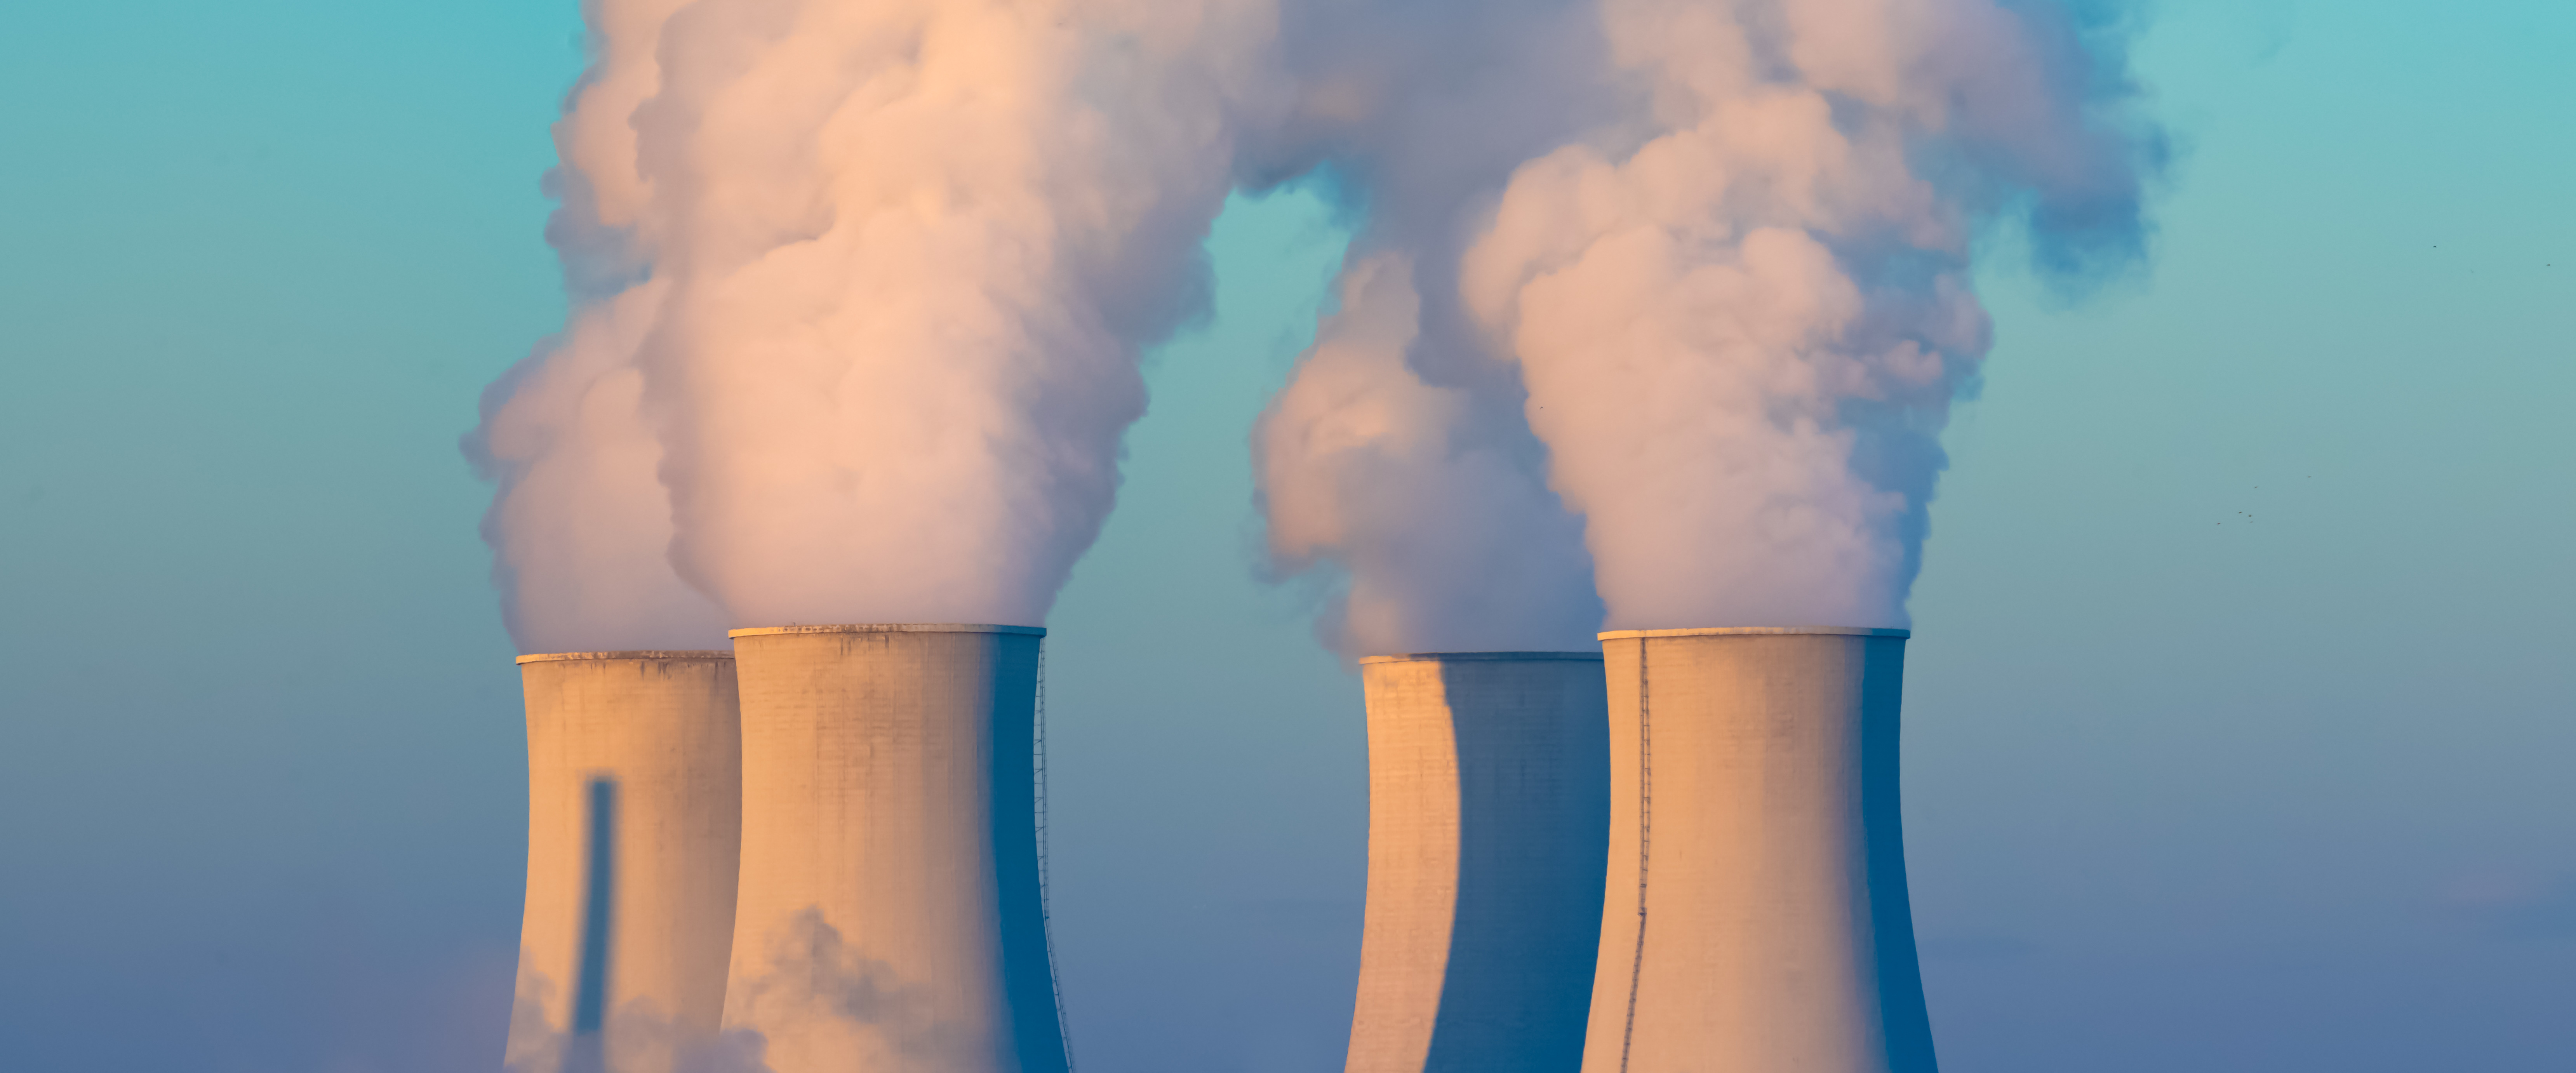 For or against nuclear power in Europe?